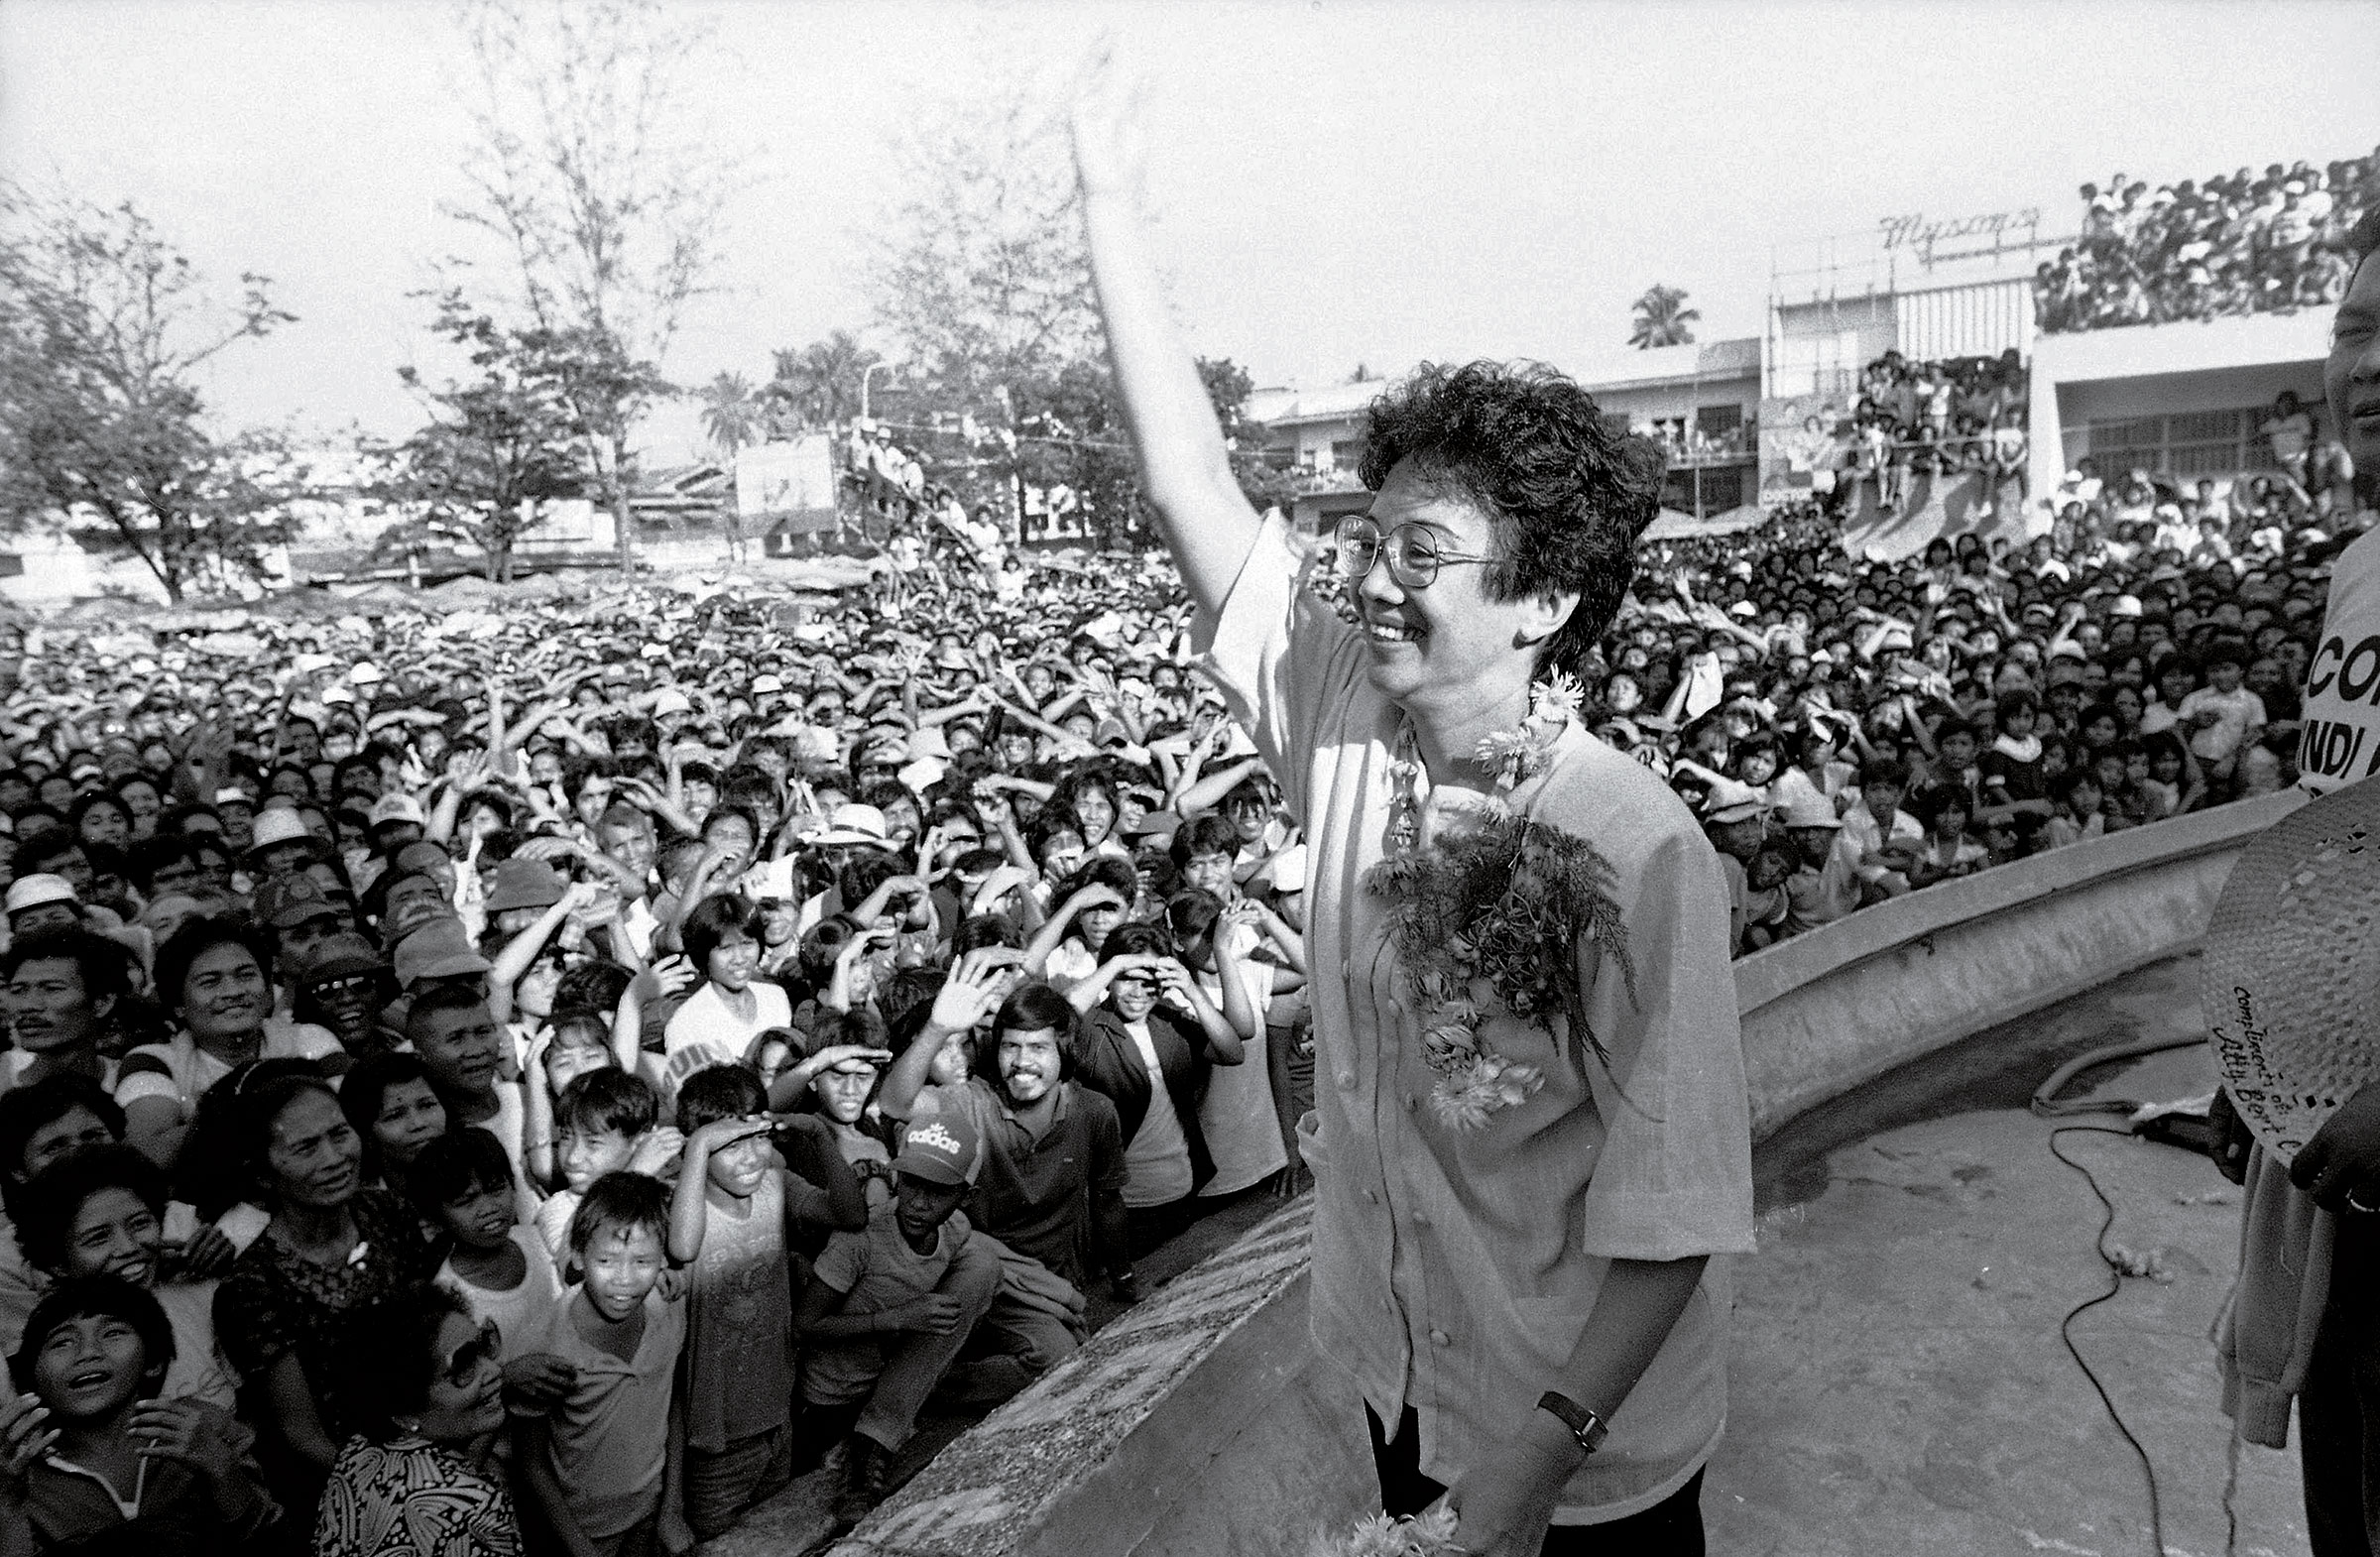 Opposition presidential candidate Corazon Aquino waves back at the crowd upon arrival for a campaign rally Jan. 20, 1986.